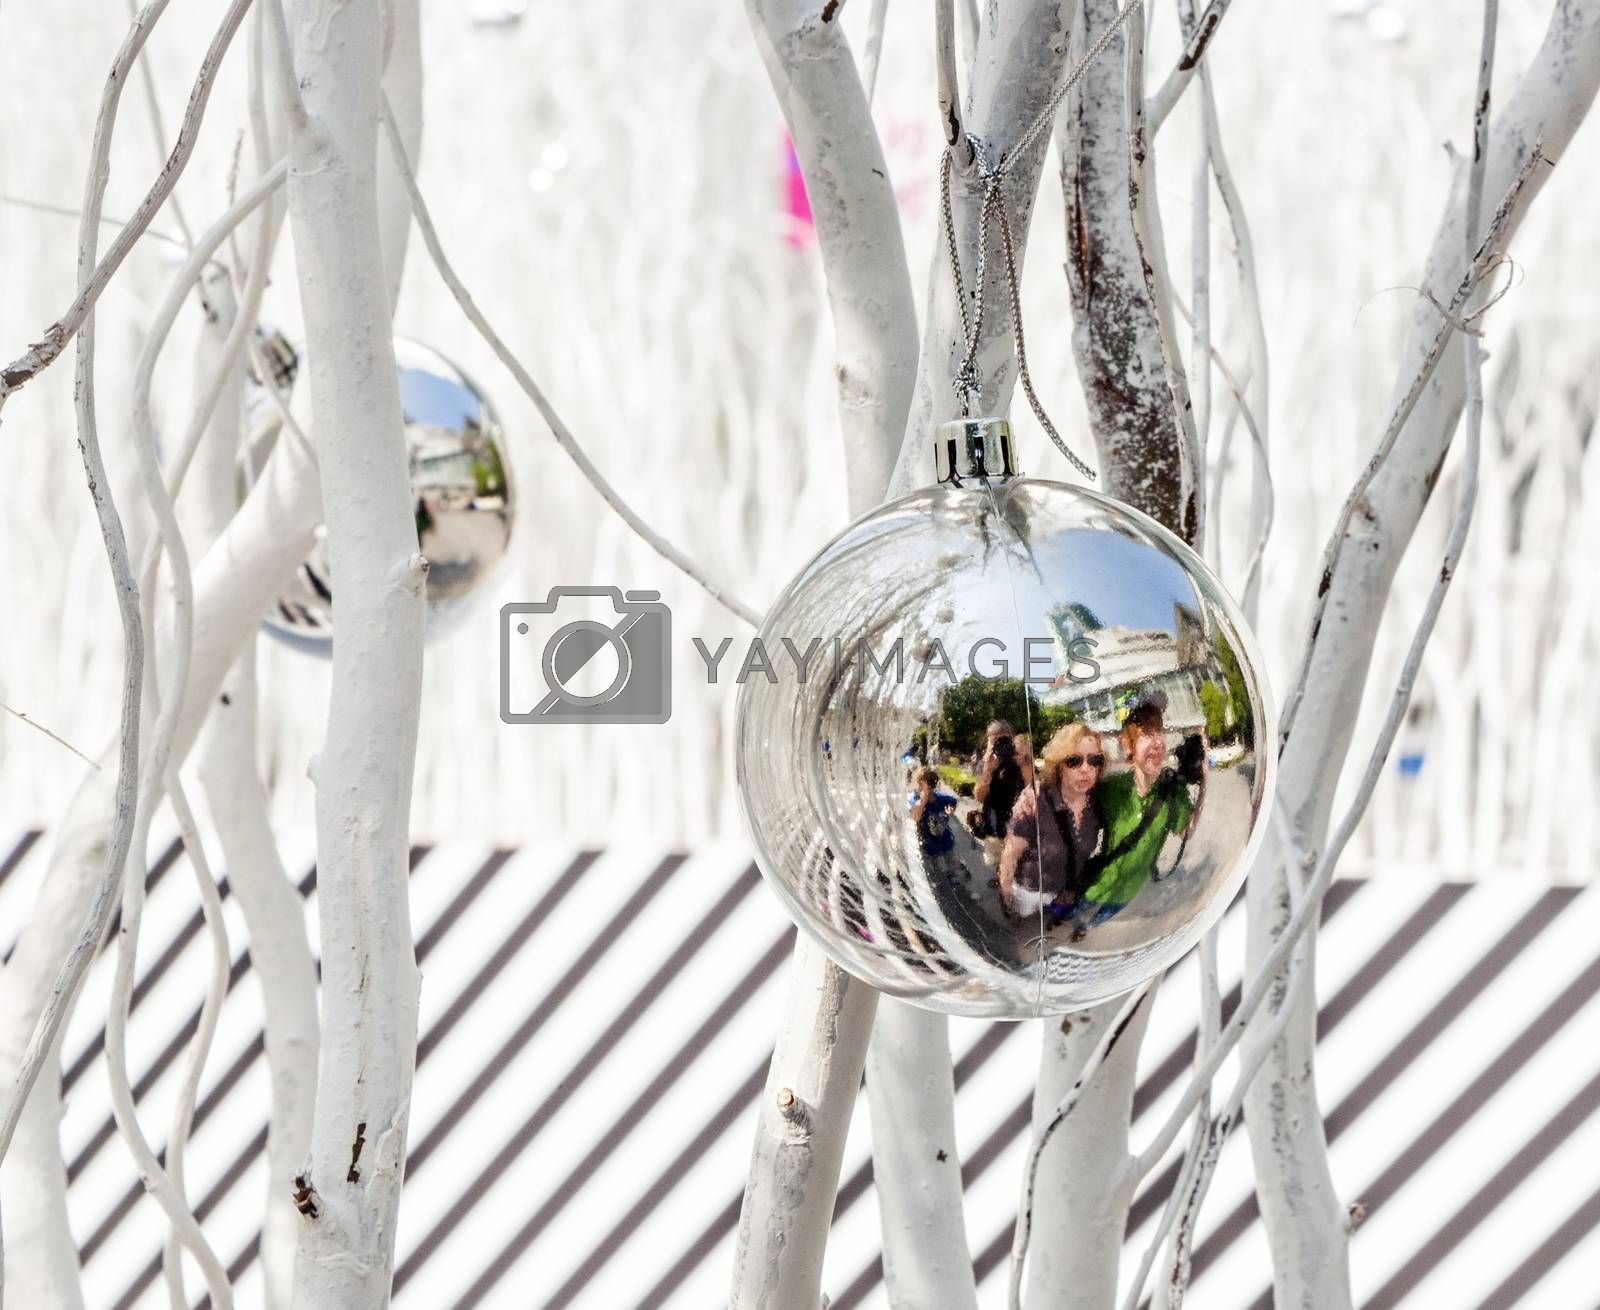 white painted branches give a harmonic background with chrismas tree balls and mirroring of a family